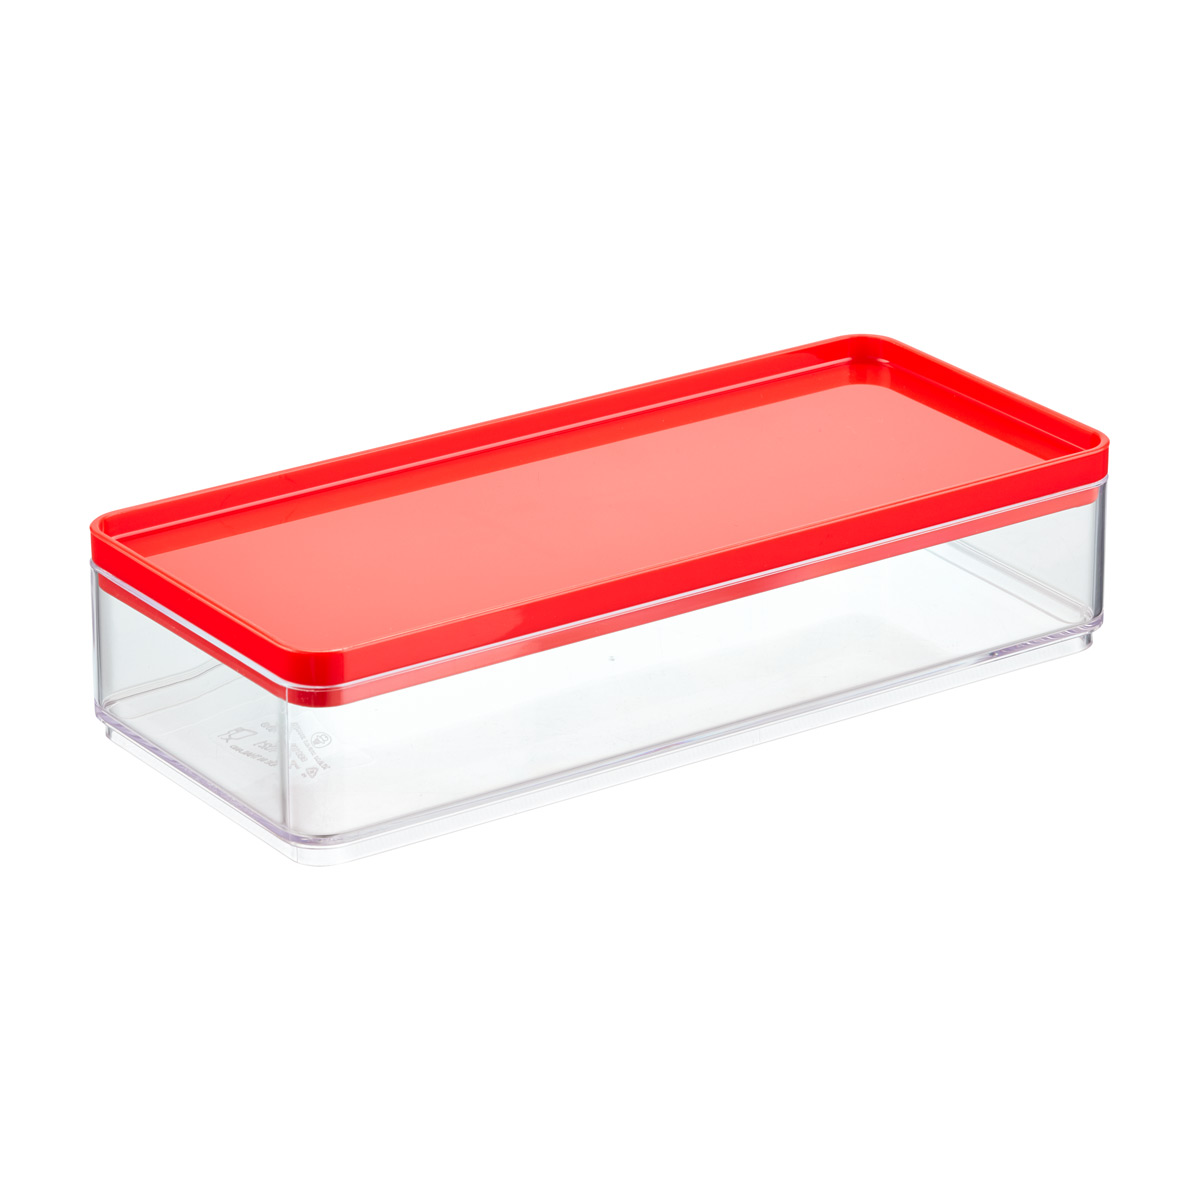 Airplane Clear Favor Boxes : Stackable rectangle clear containers with red lids the